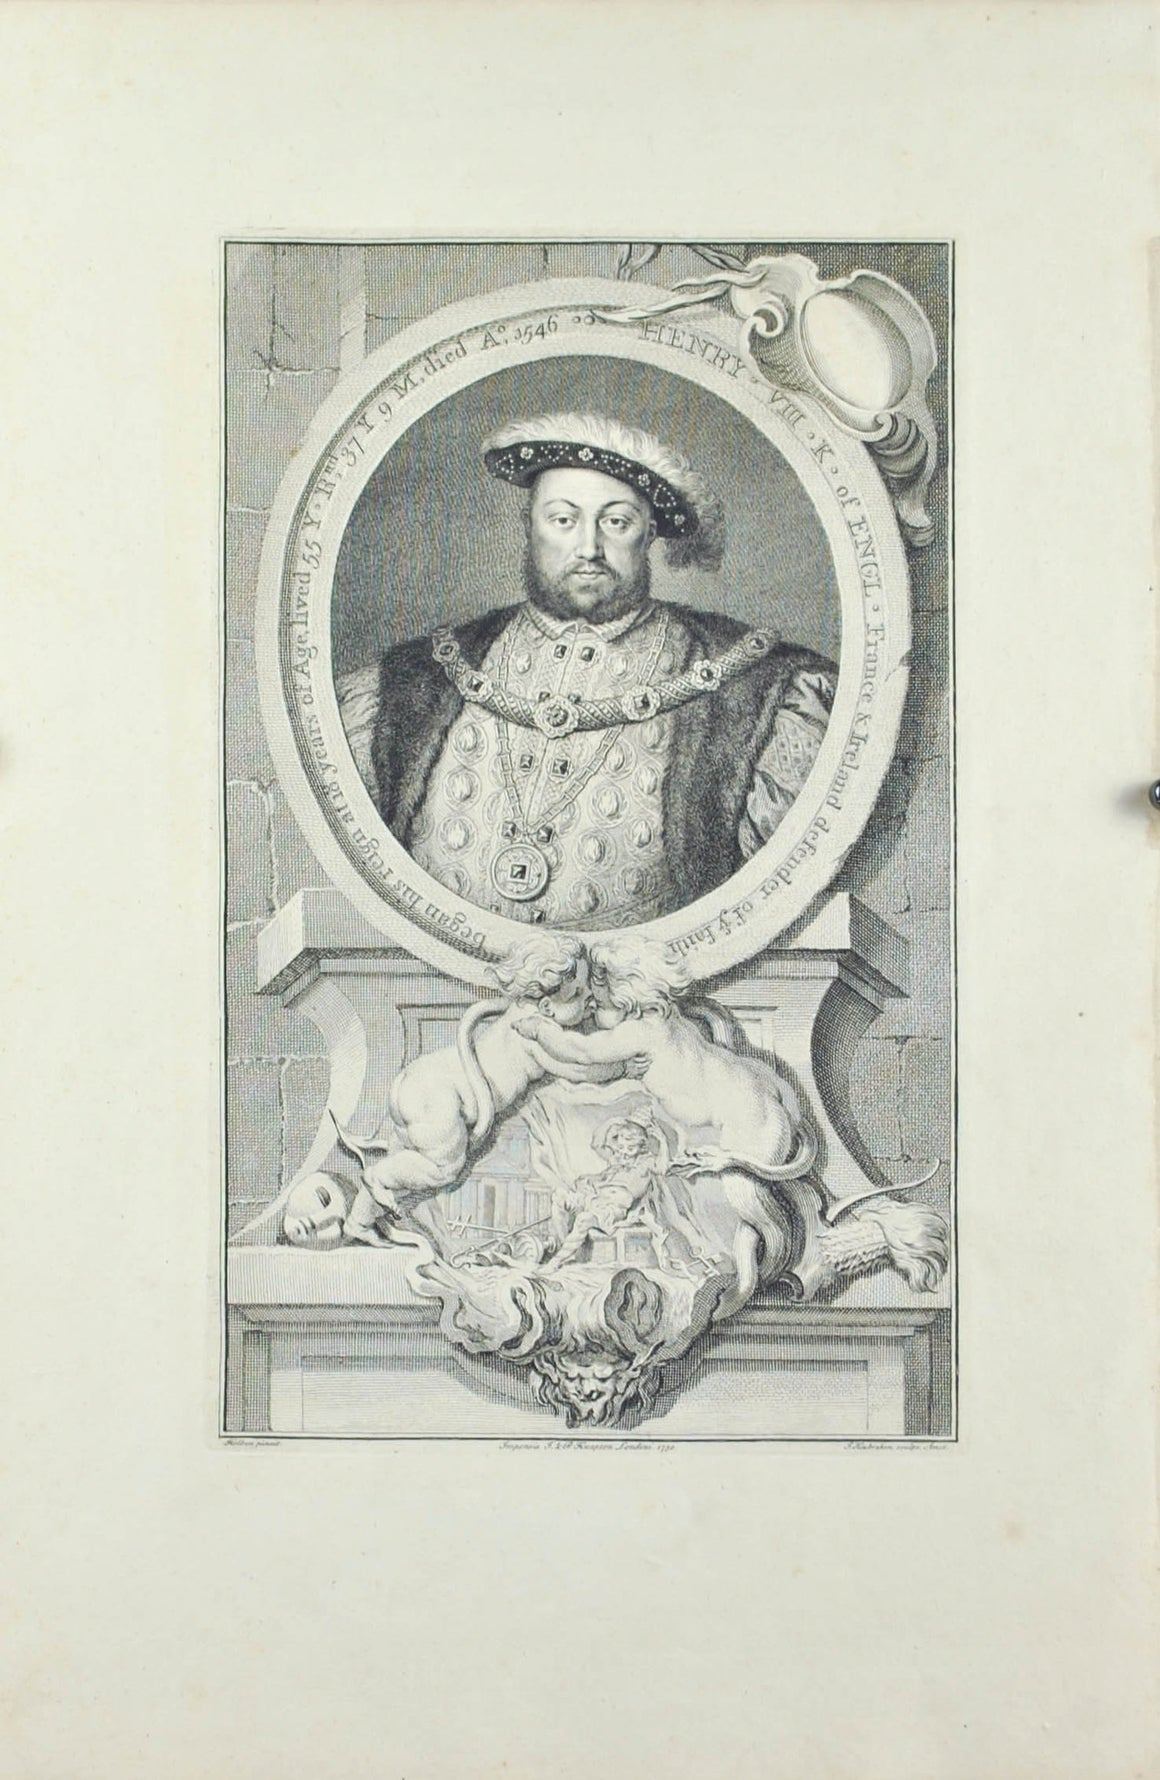 Henry VIII King of England Antique Engraved Print 1738 British Royalty